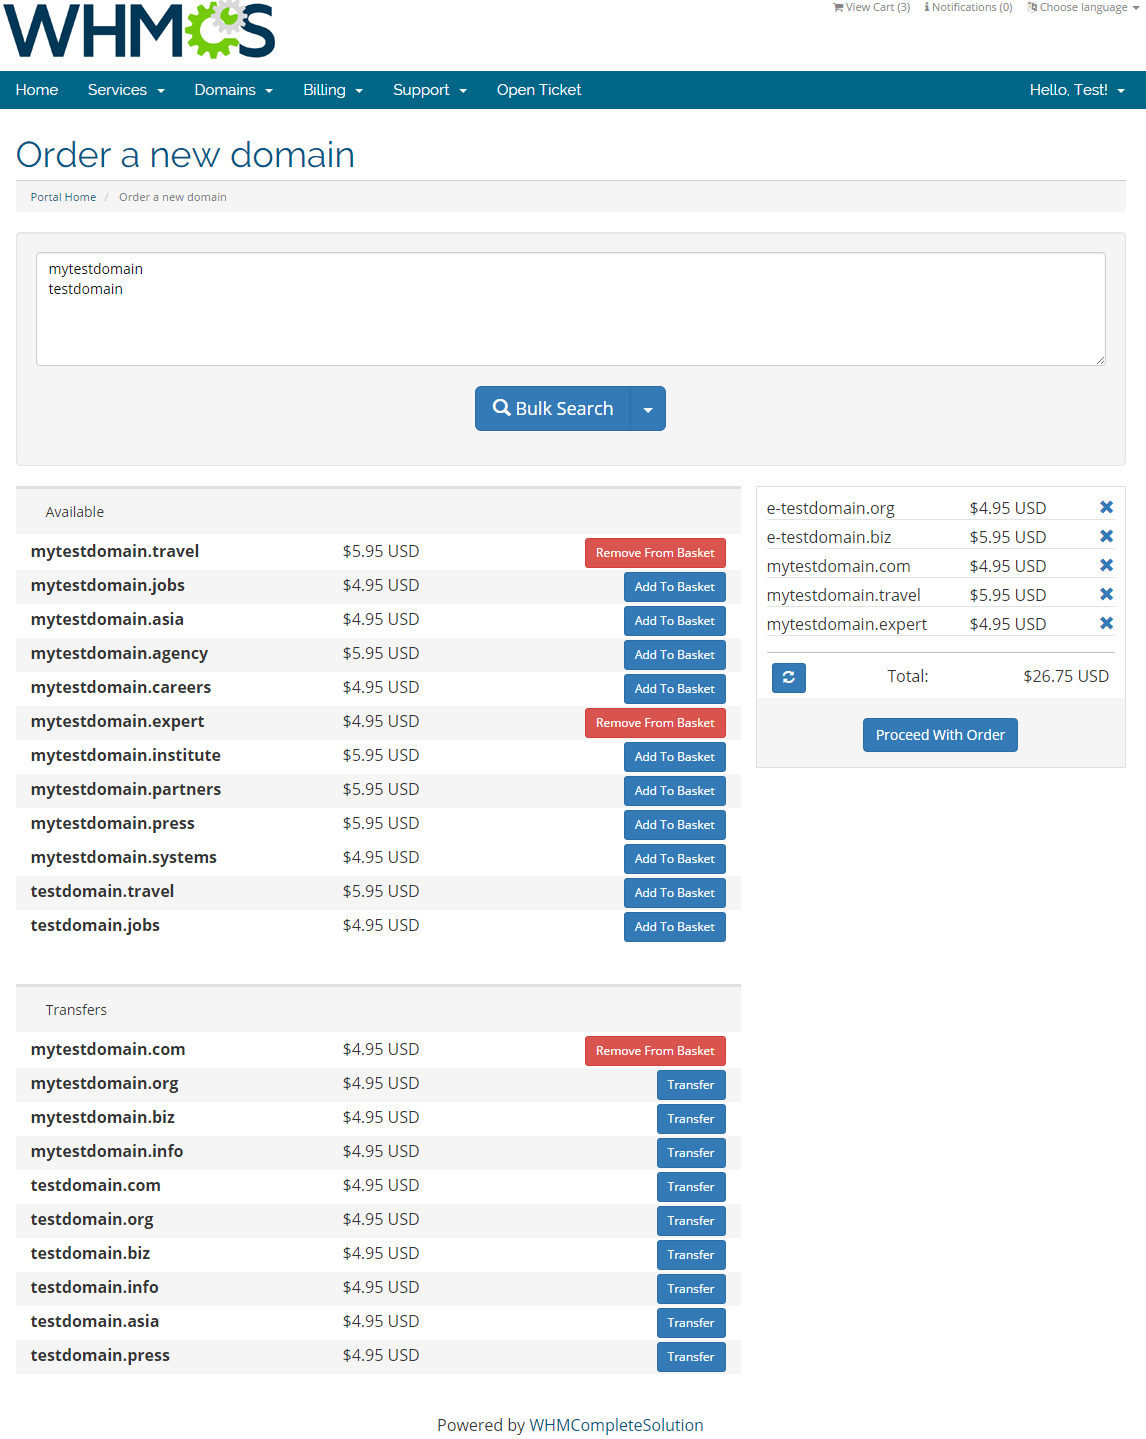 Domain Orders Extended For WHMCS: Screen 6